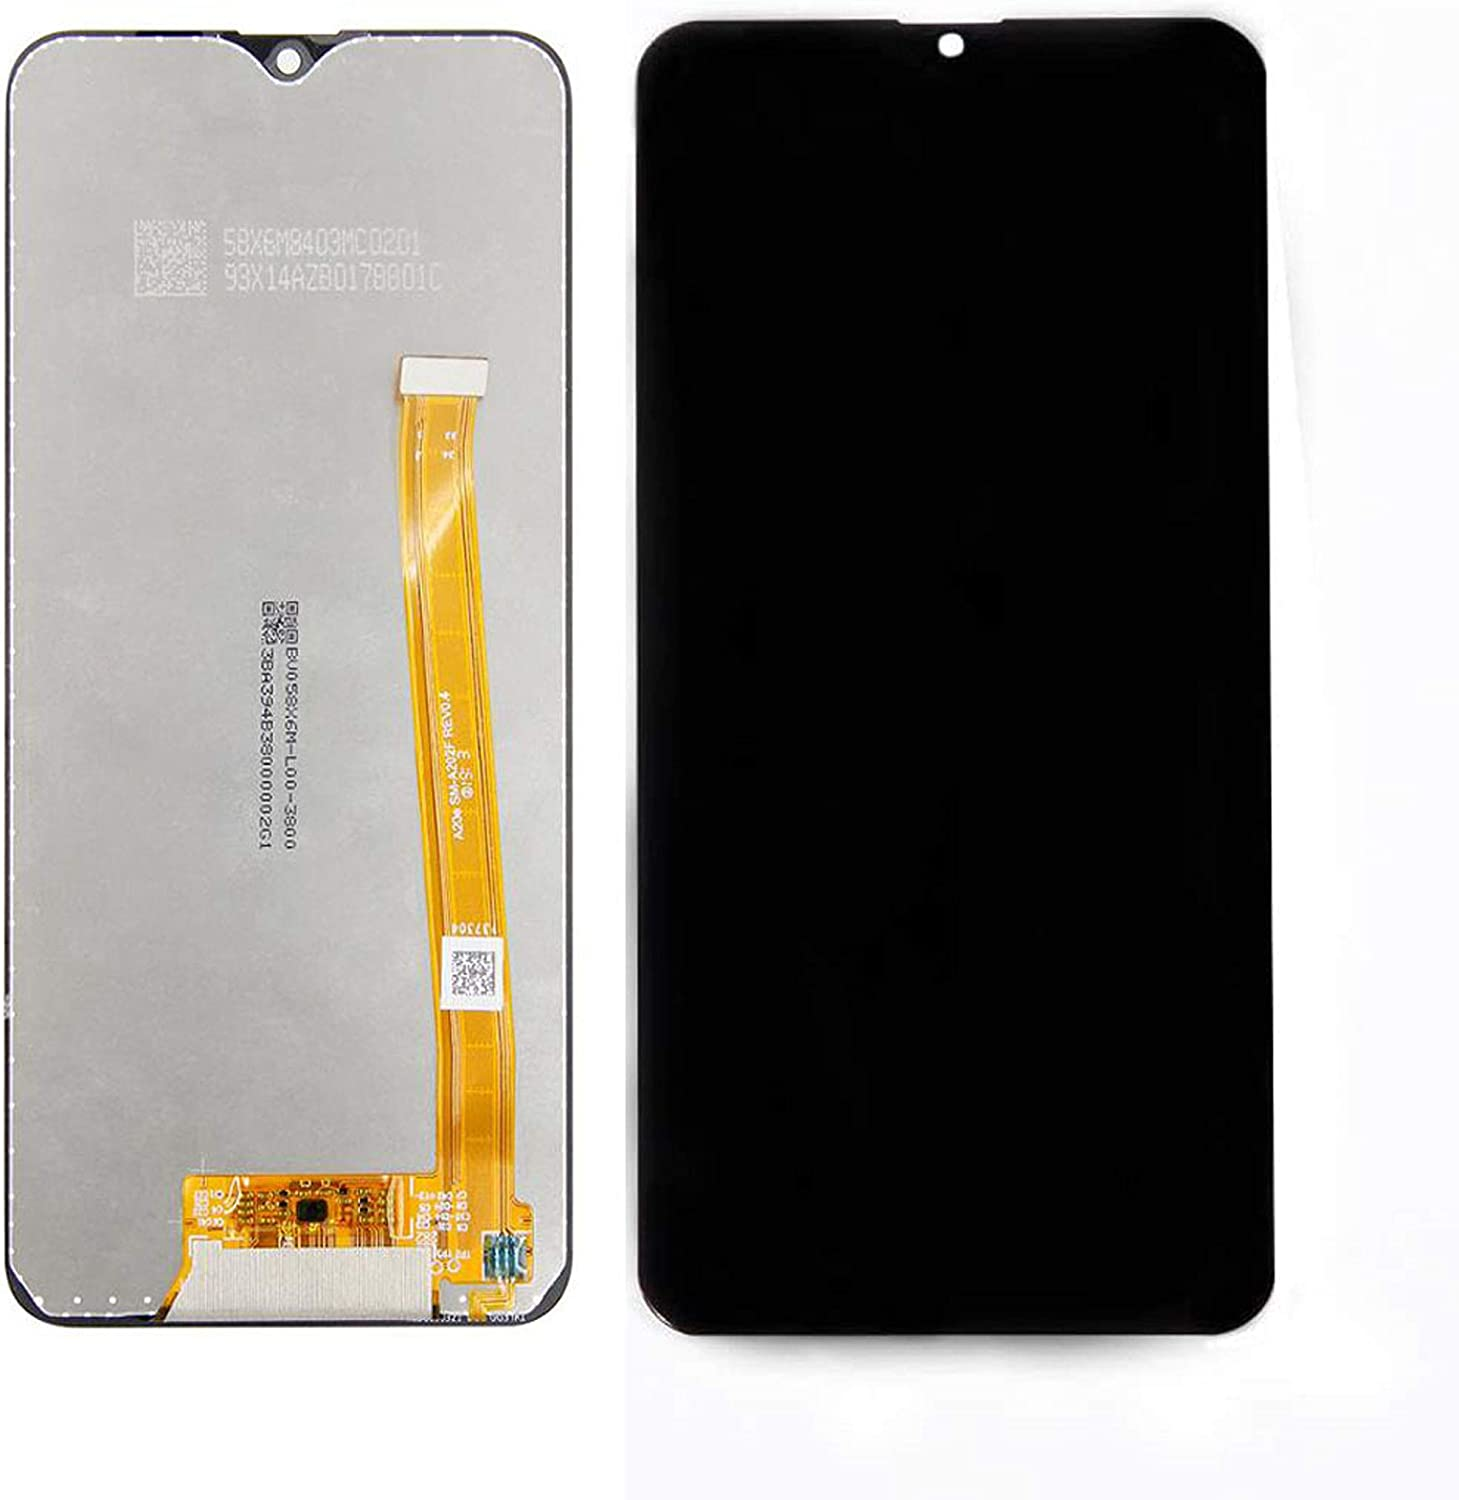 Max 82% OFF famous SSSMY A10e OLED Screen Replacement A102 Samsung Galaxy for